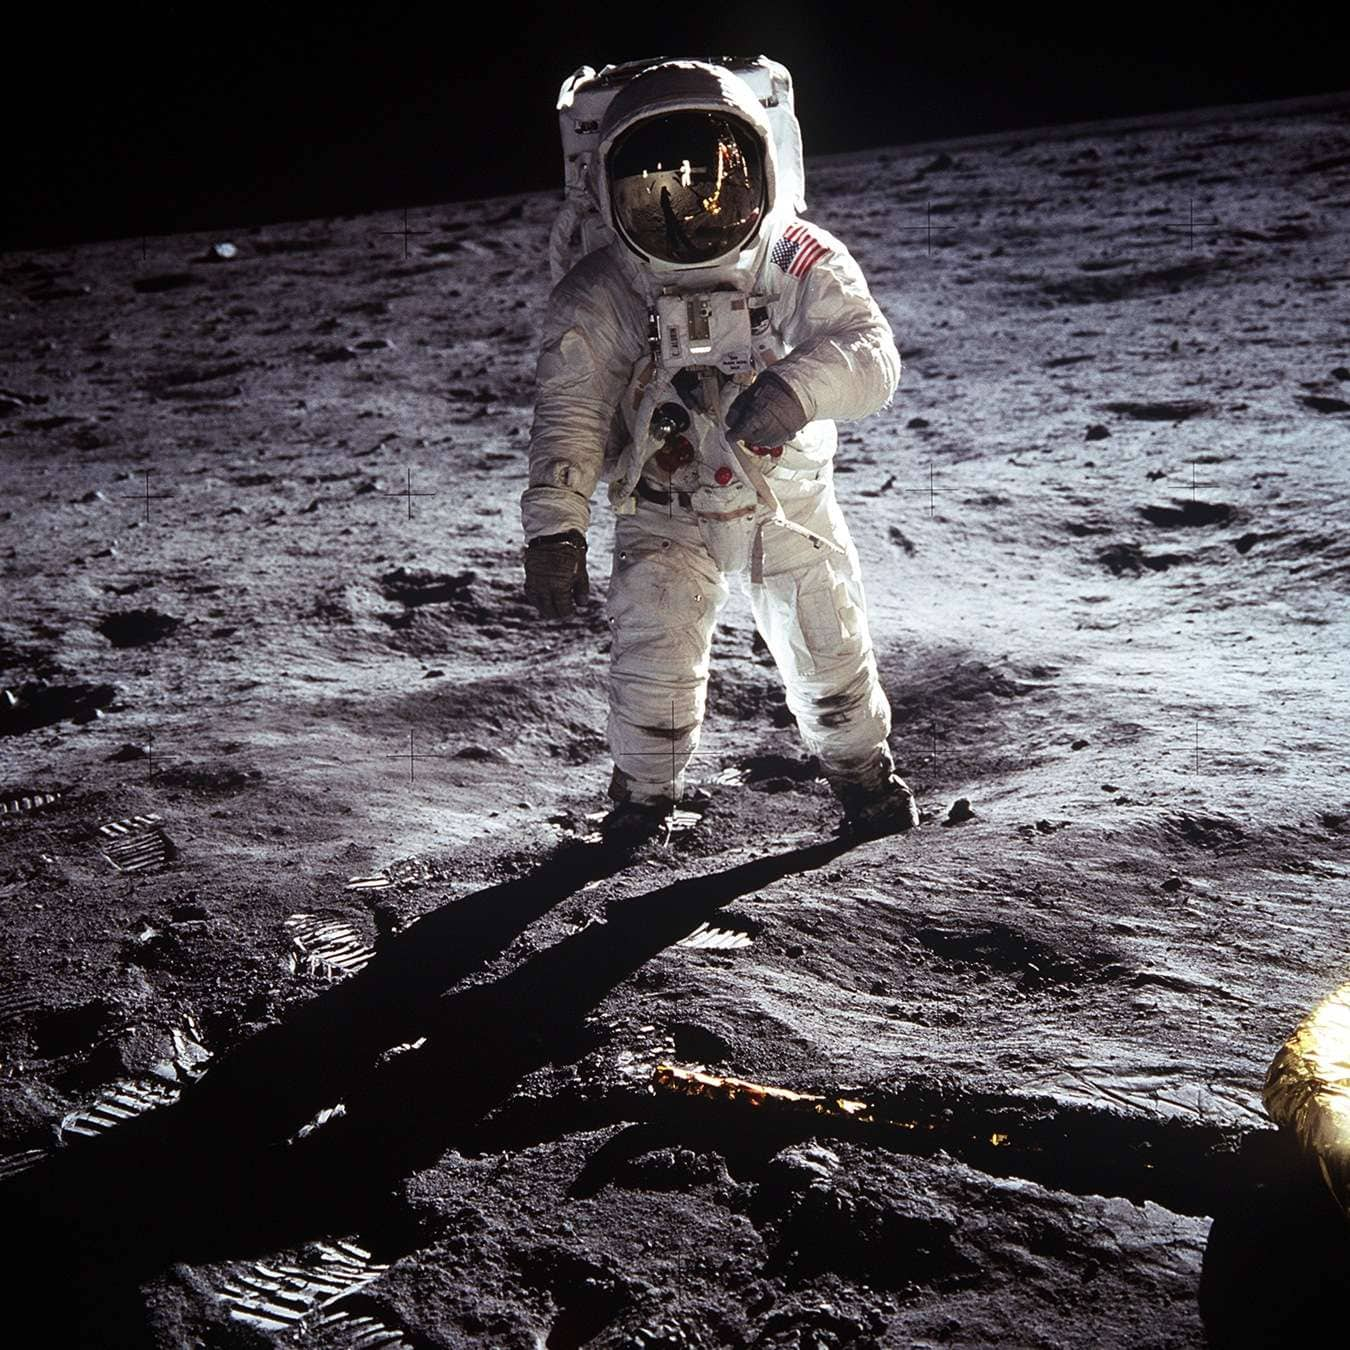 Astronaut Buzz Aldrin walks on the surface of the moon near the leg of the lunar module Eagle during the Apollo 11 mission. (Image Credit: NASA)